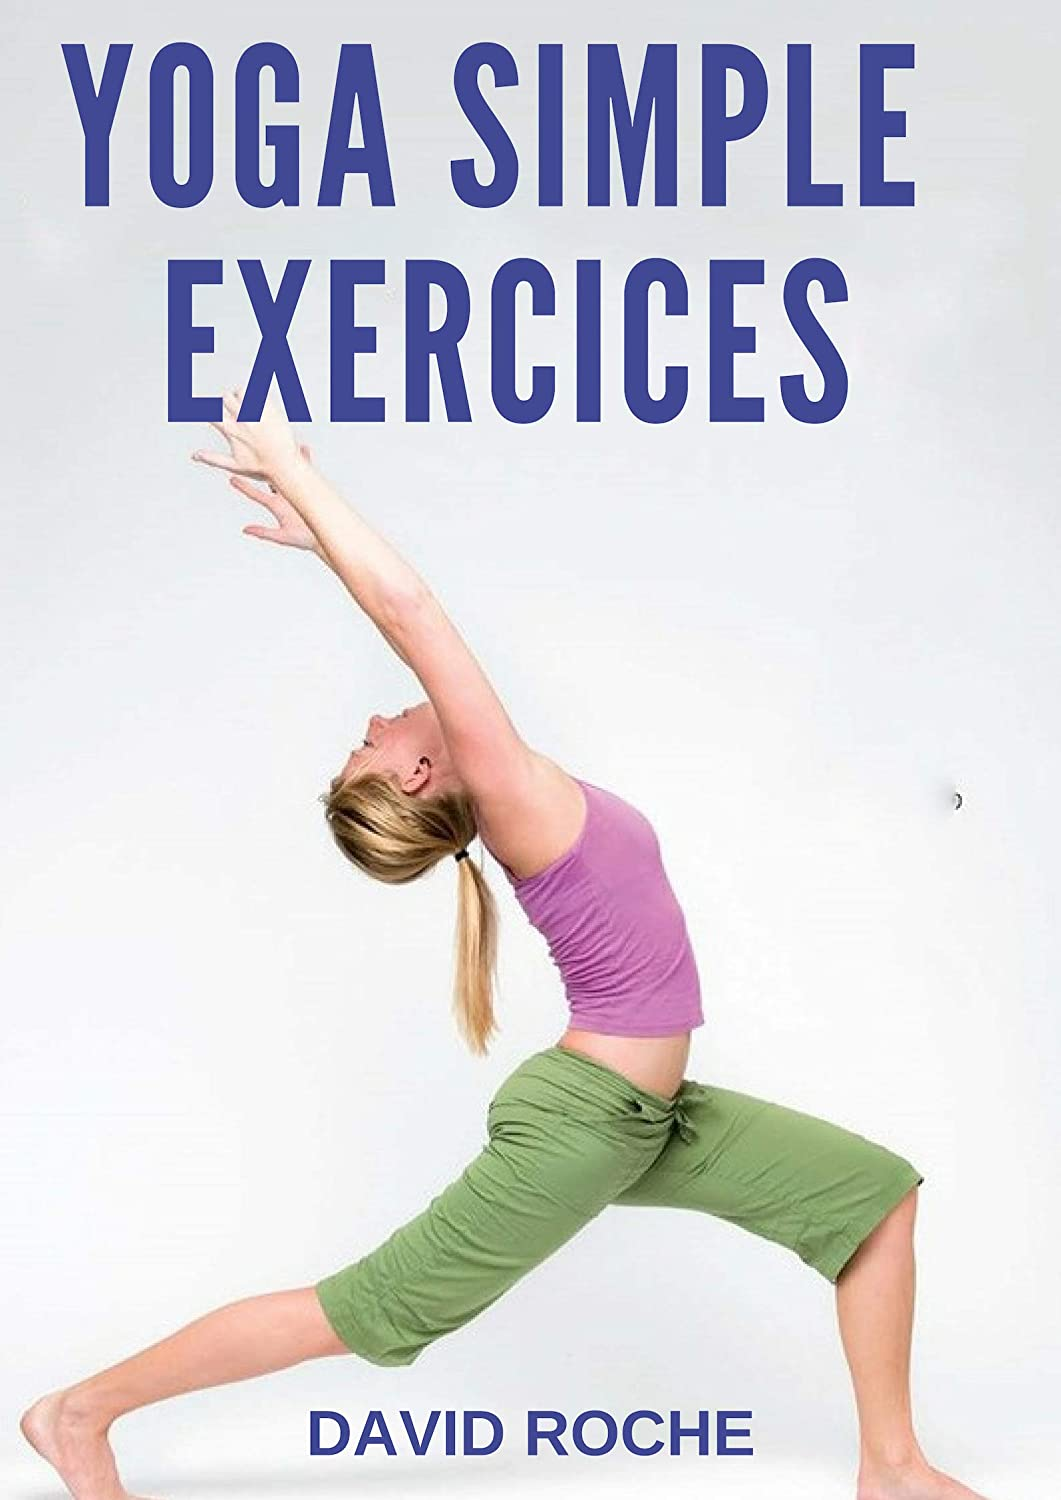 Yoga: Simple Exercices (French Edition) eBook: DAVID ROCHE ...